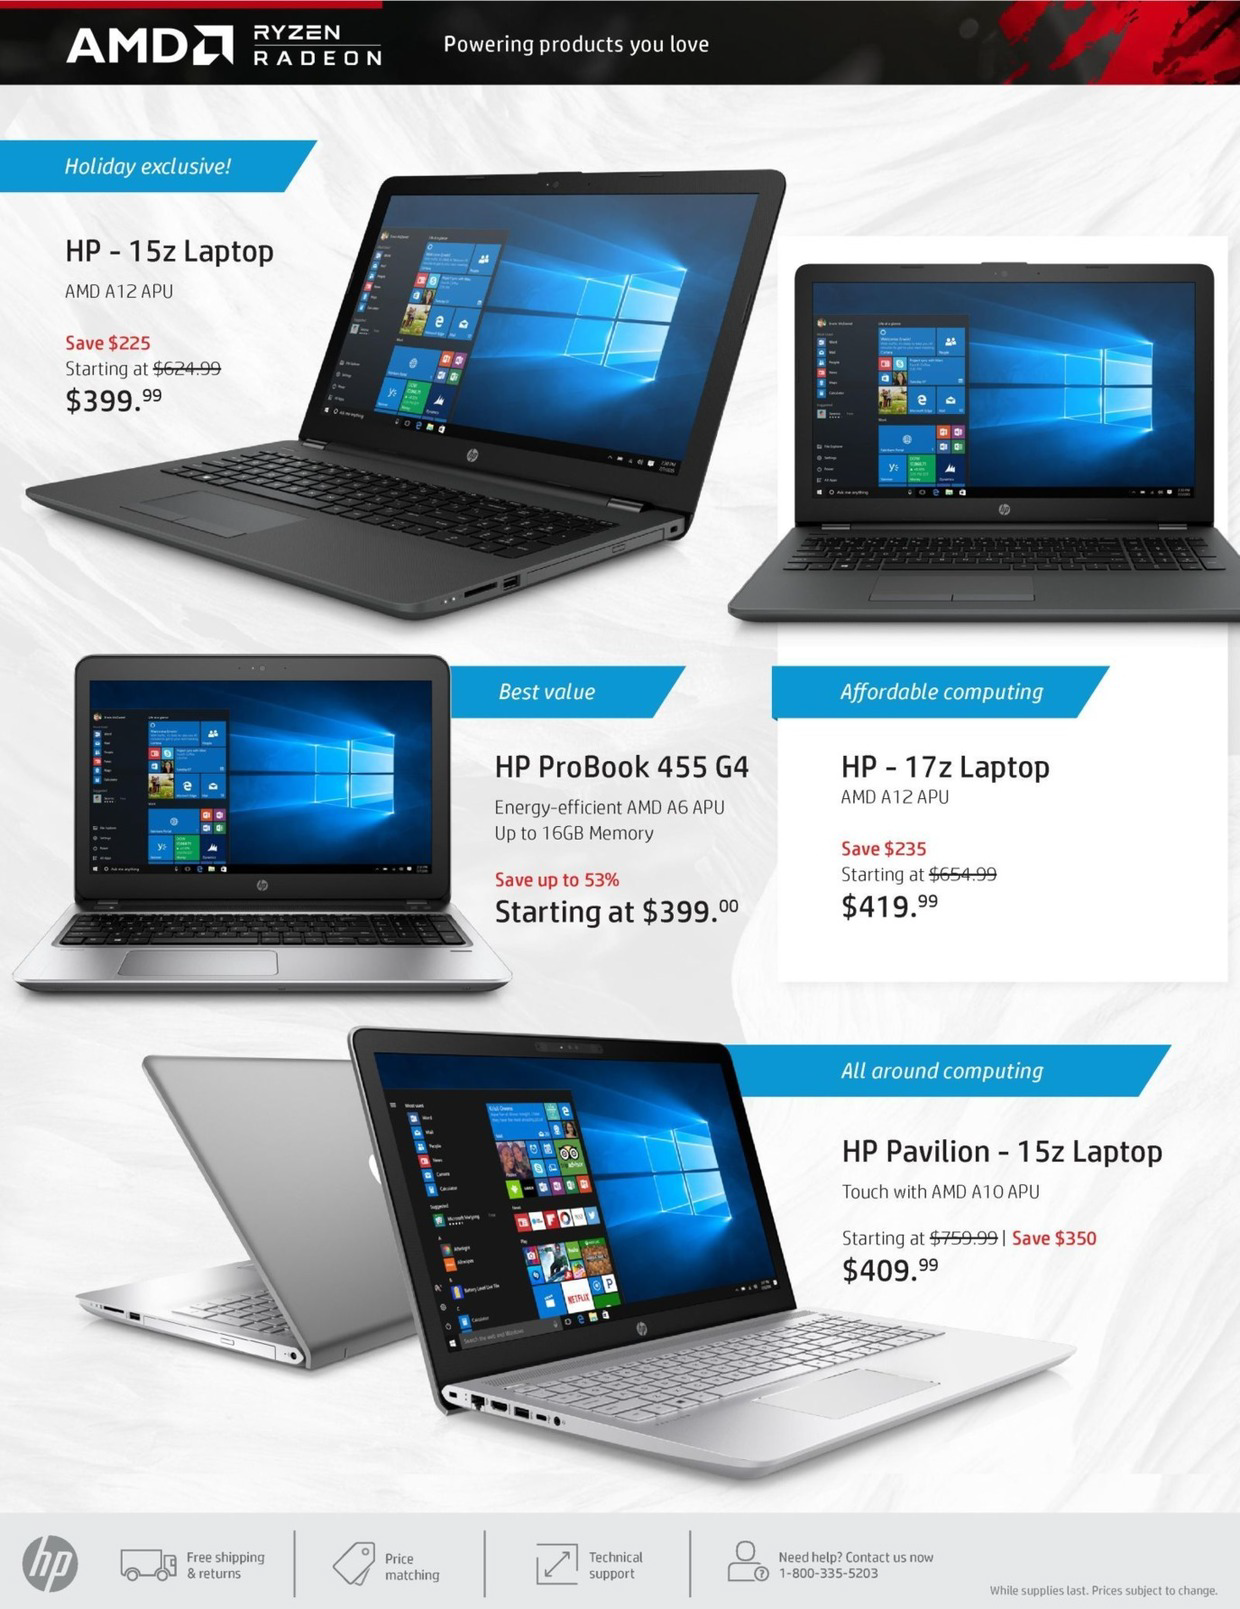 Hp Black Friday 2017 Ads And Deals Hp Hpblackfriday Hpblackfriday2017 Blackfriday Blackfriday2017 Black Friday Ads Deal